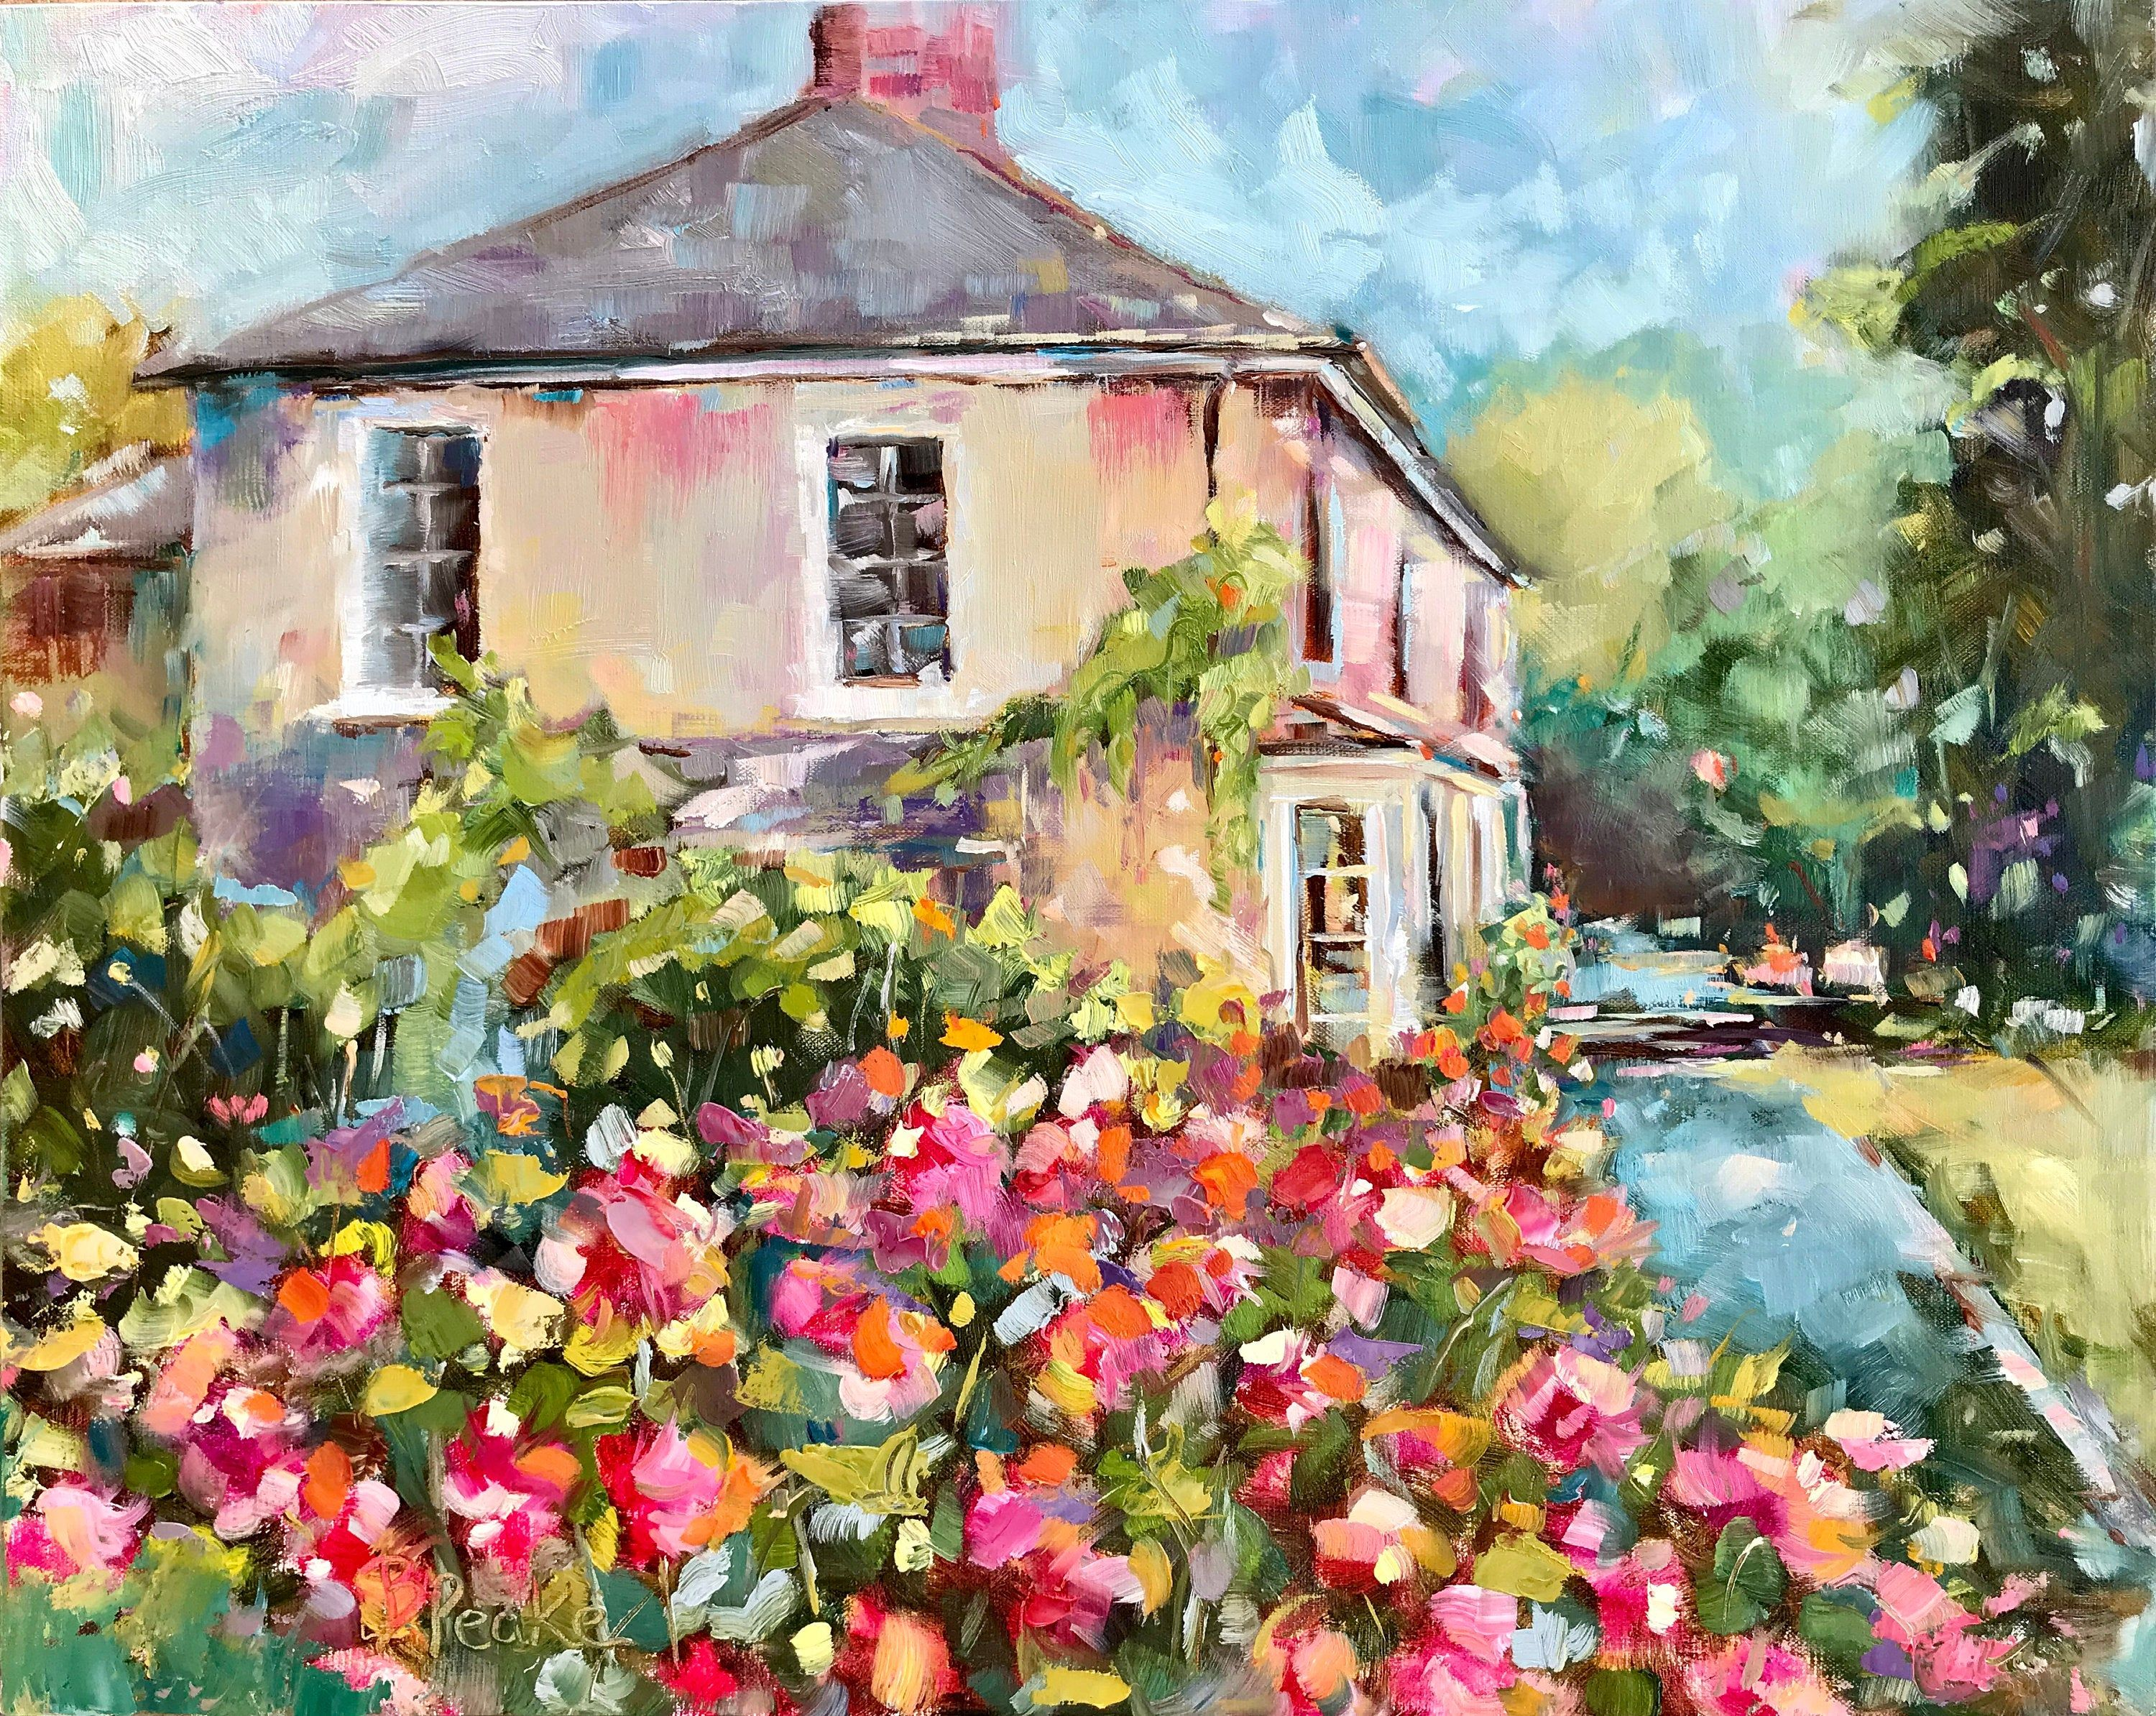 Original Art Oil Painting Country Home Floral Landscape Painting Impressionist Art Brenda Peake 16x20 Wall Art Garden Painting In 2020 Garden Painting Impressionist Art Contemporary Oil Paintings